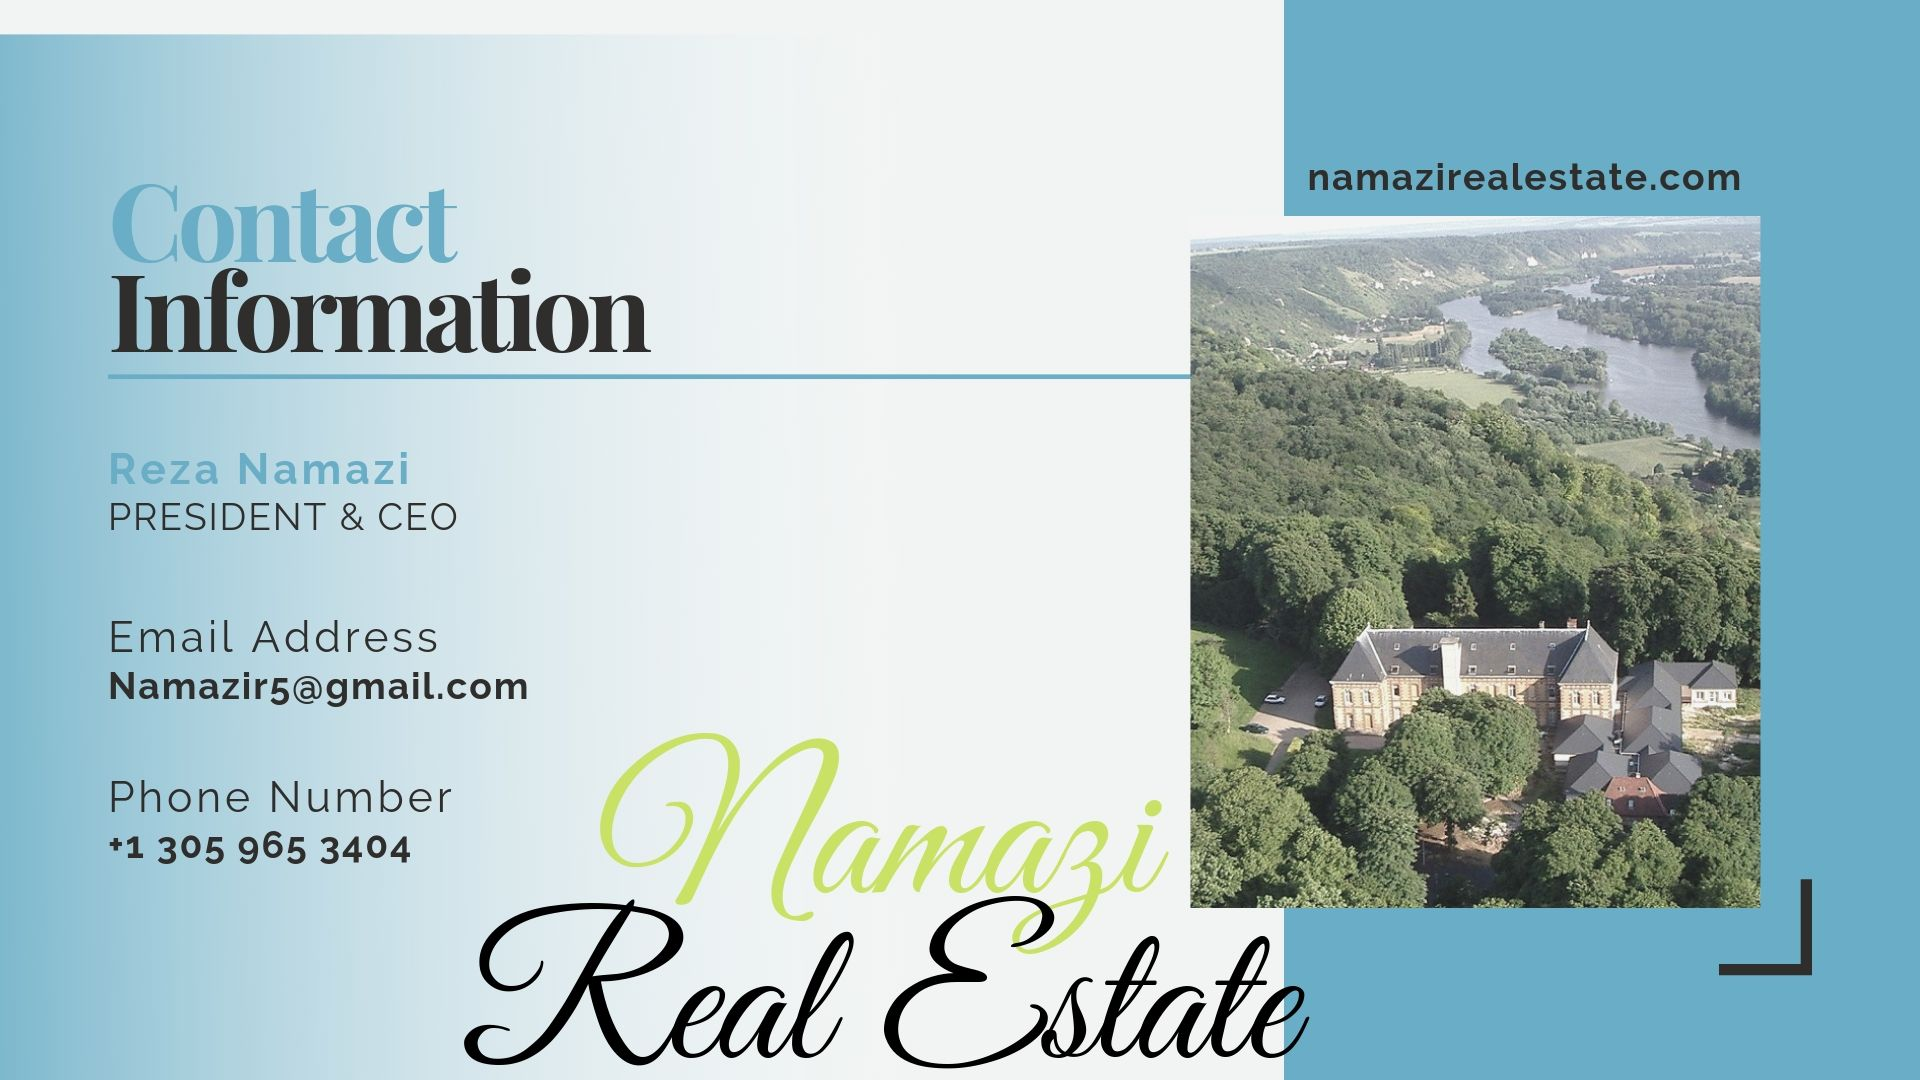 Namazi Real Estate